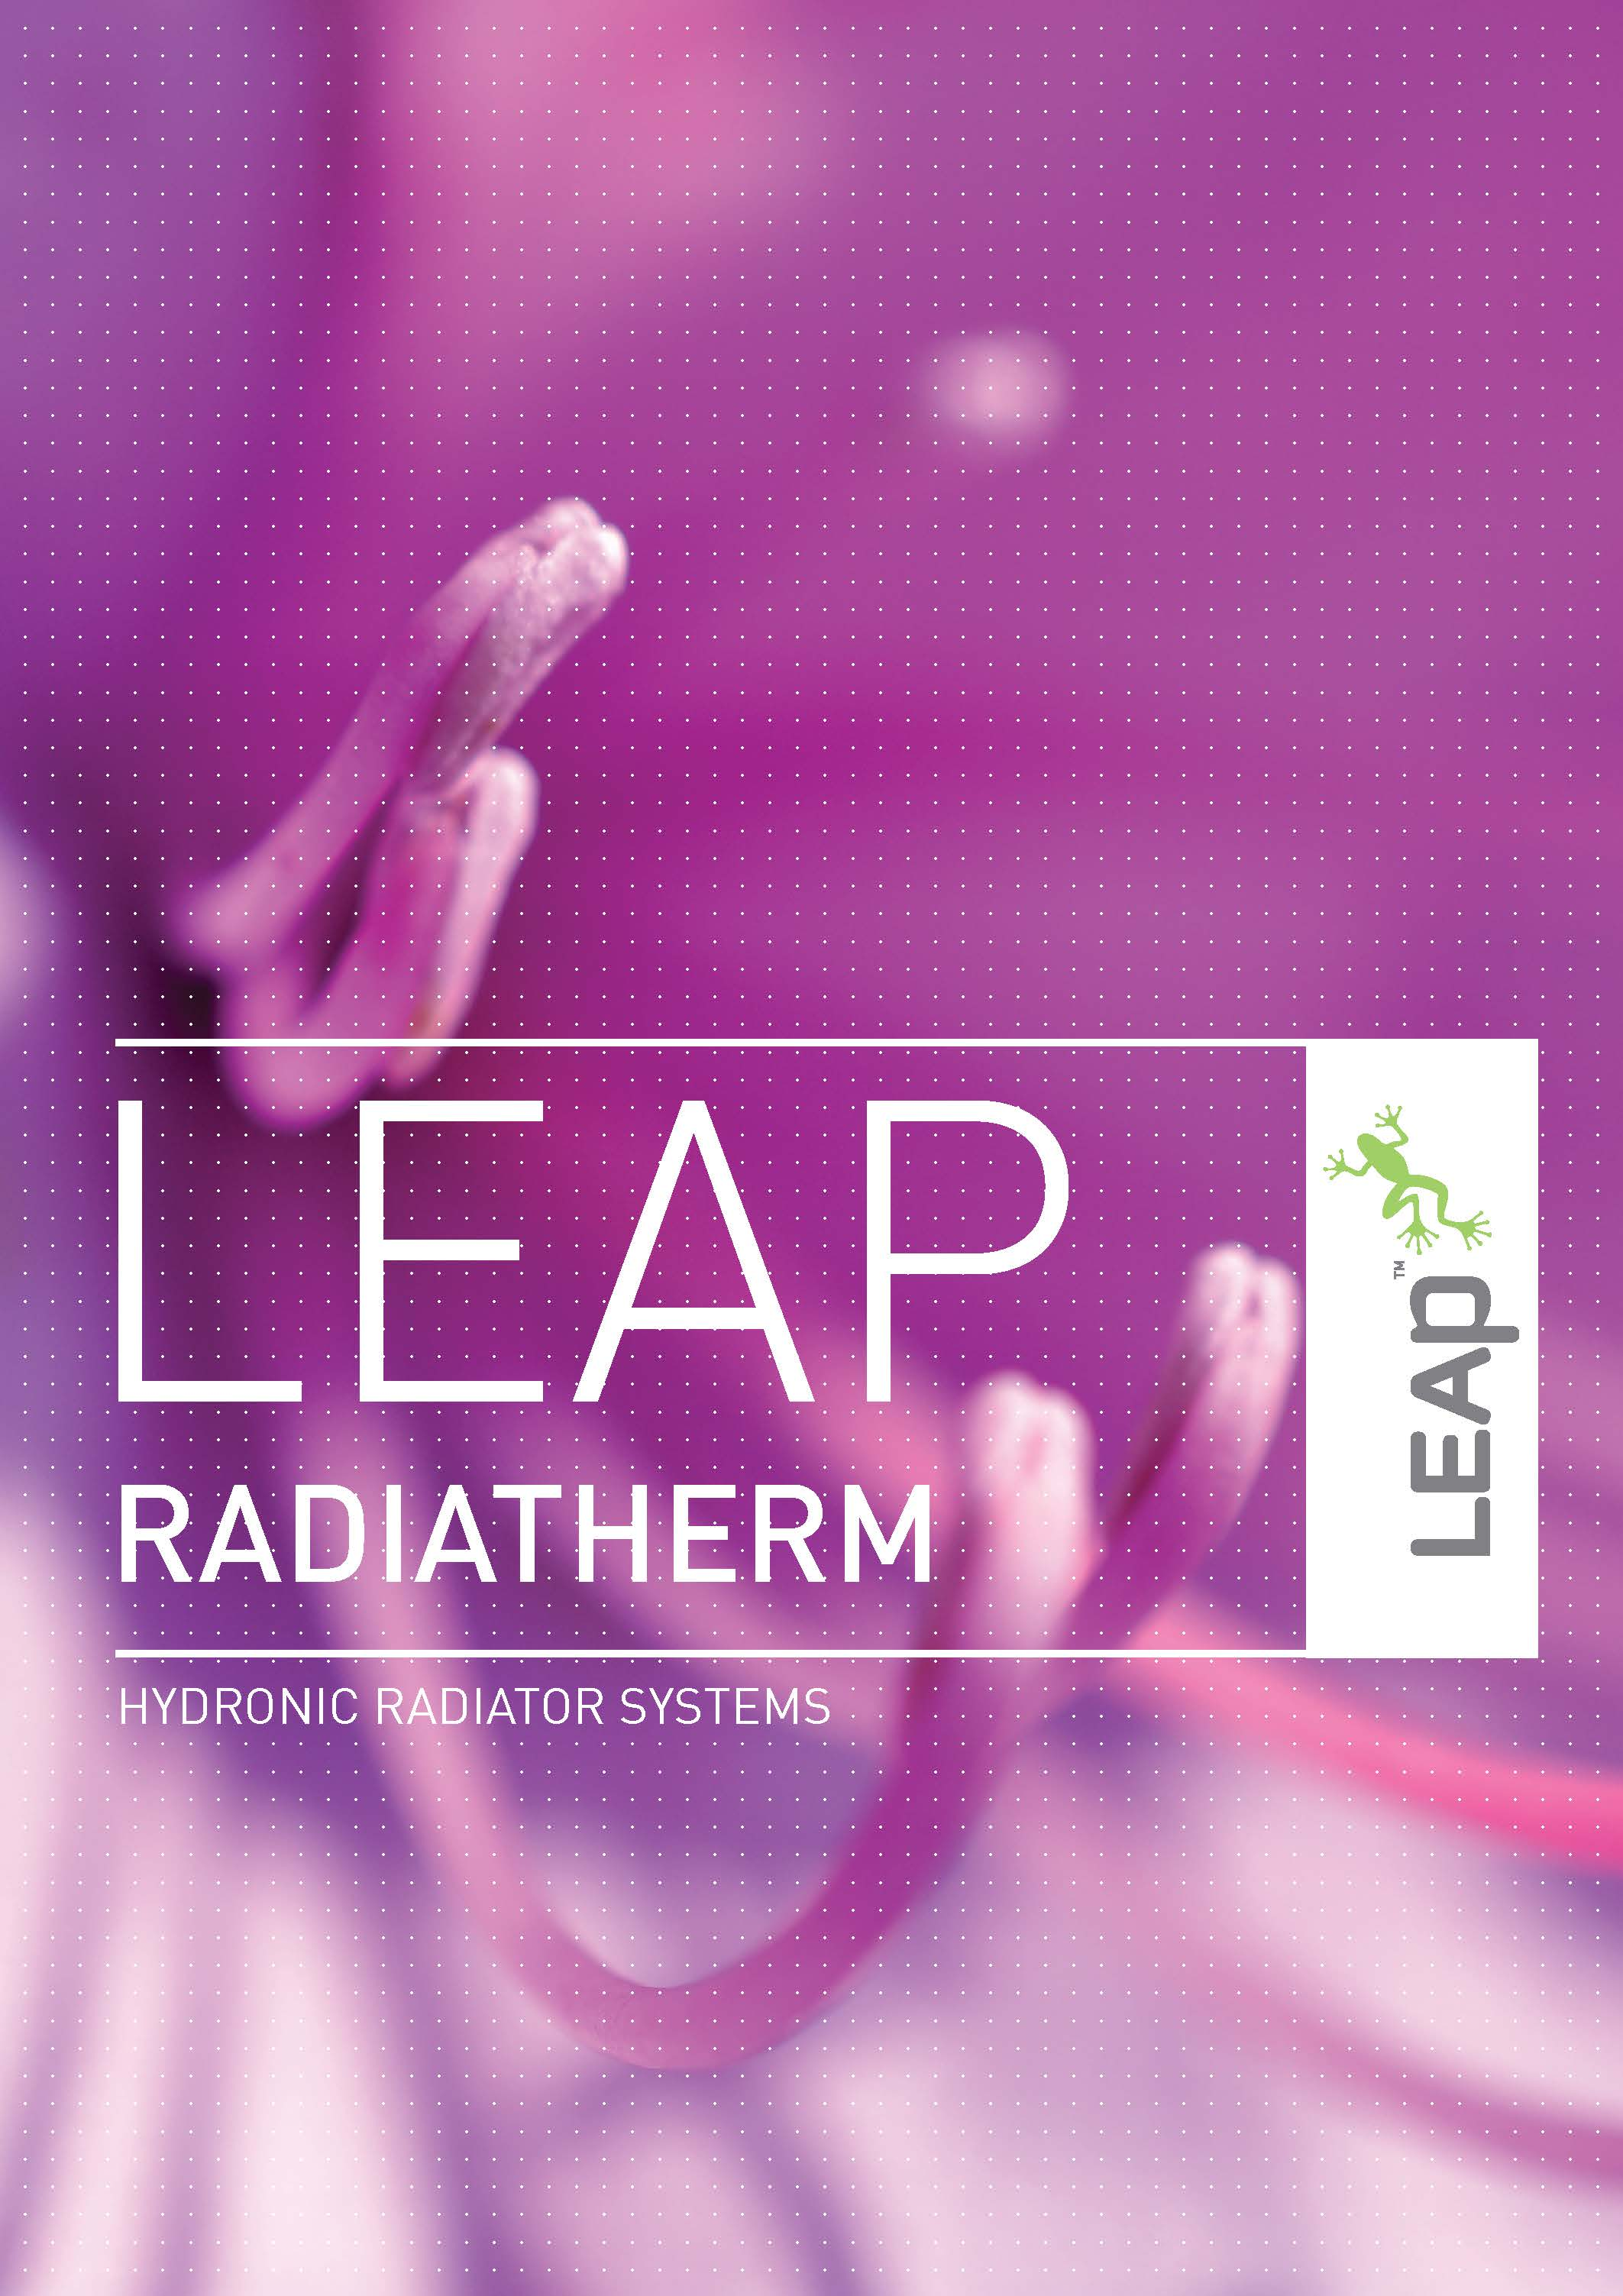 LEAP Radiatherm Brochure